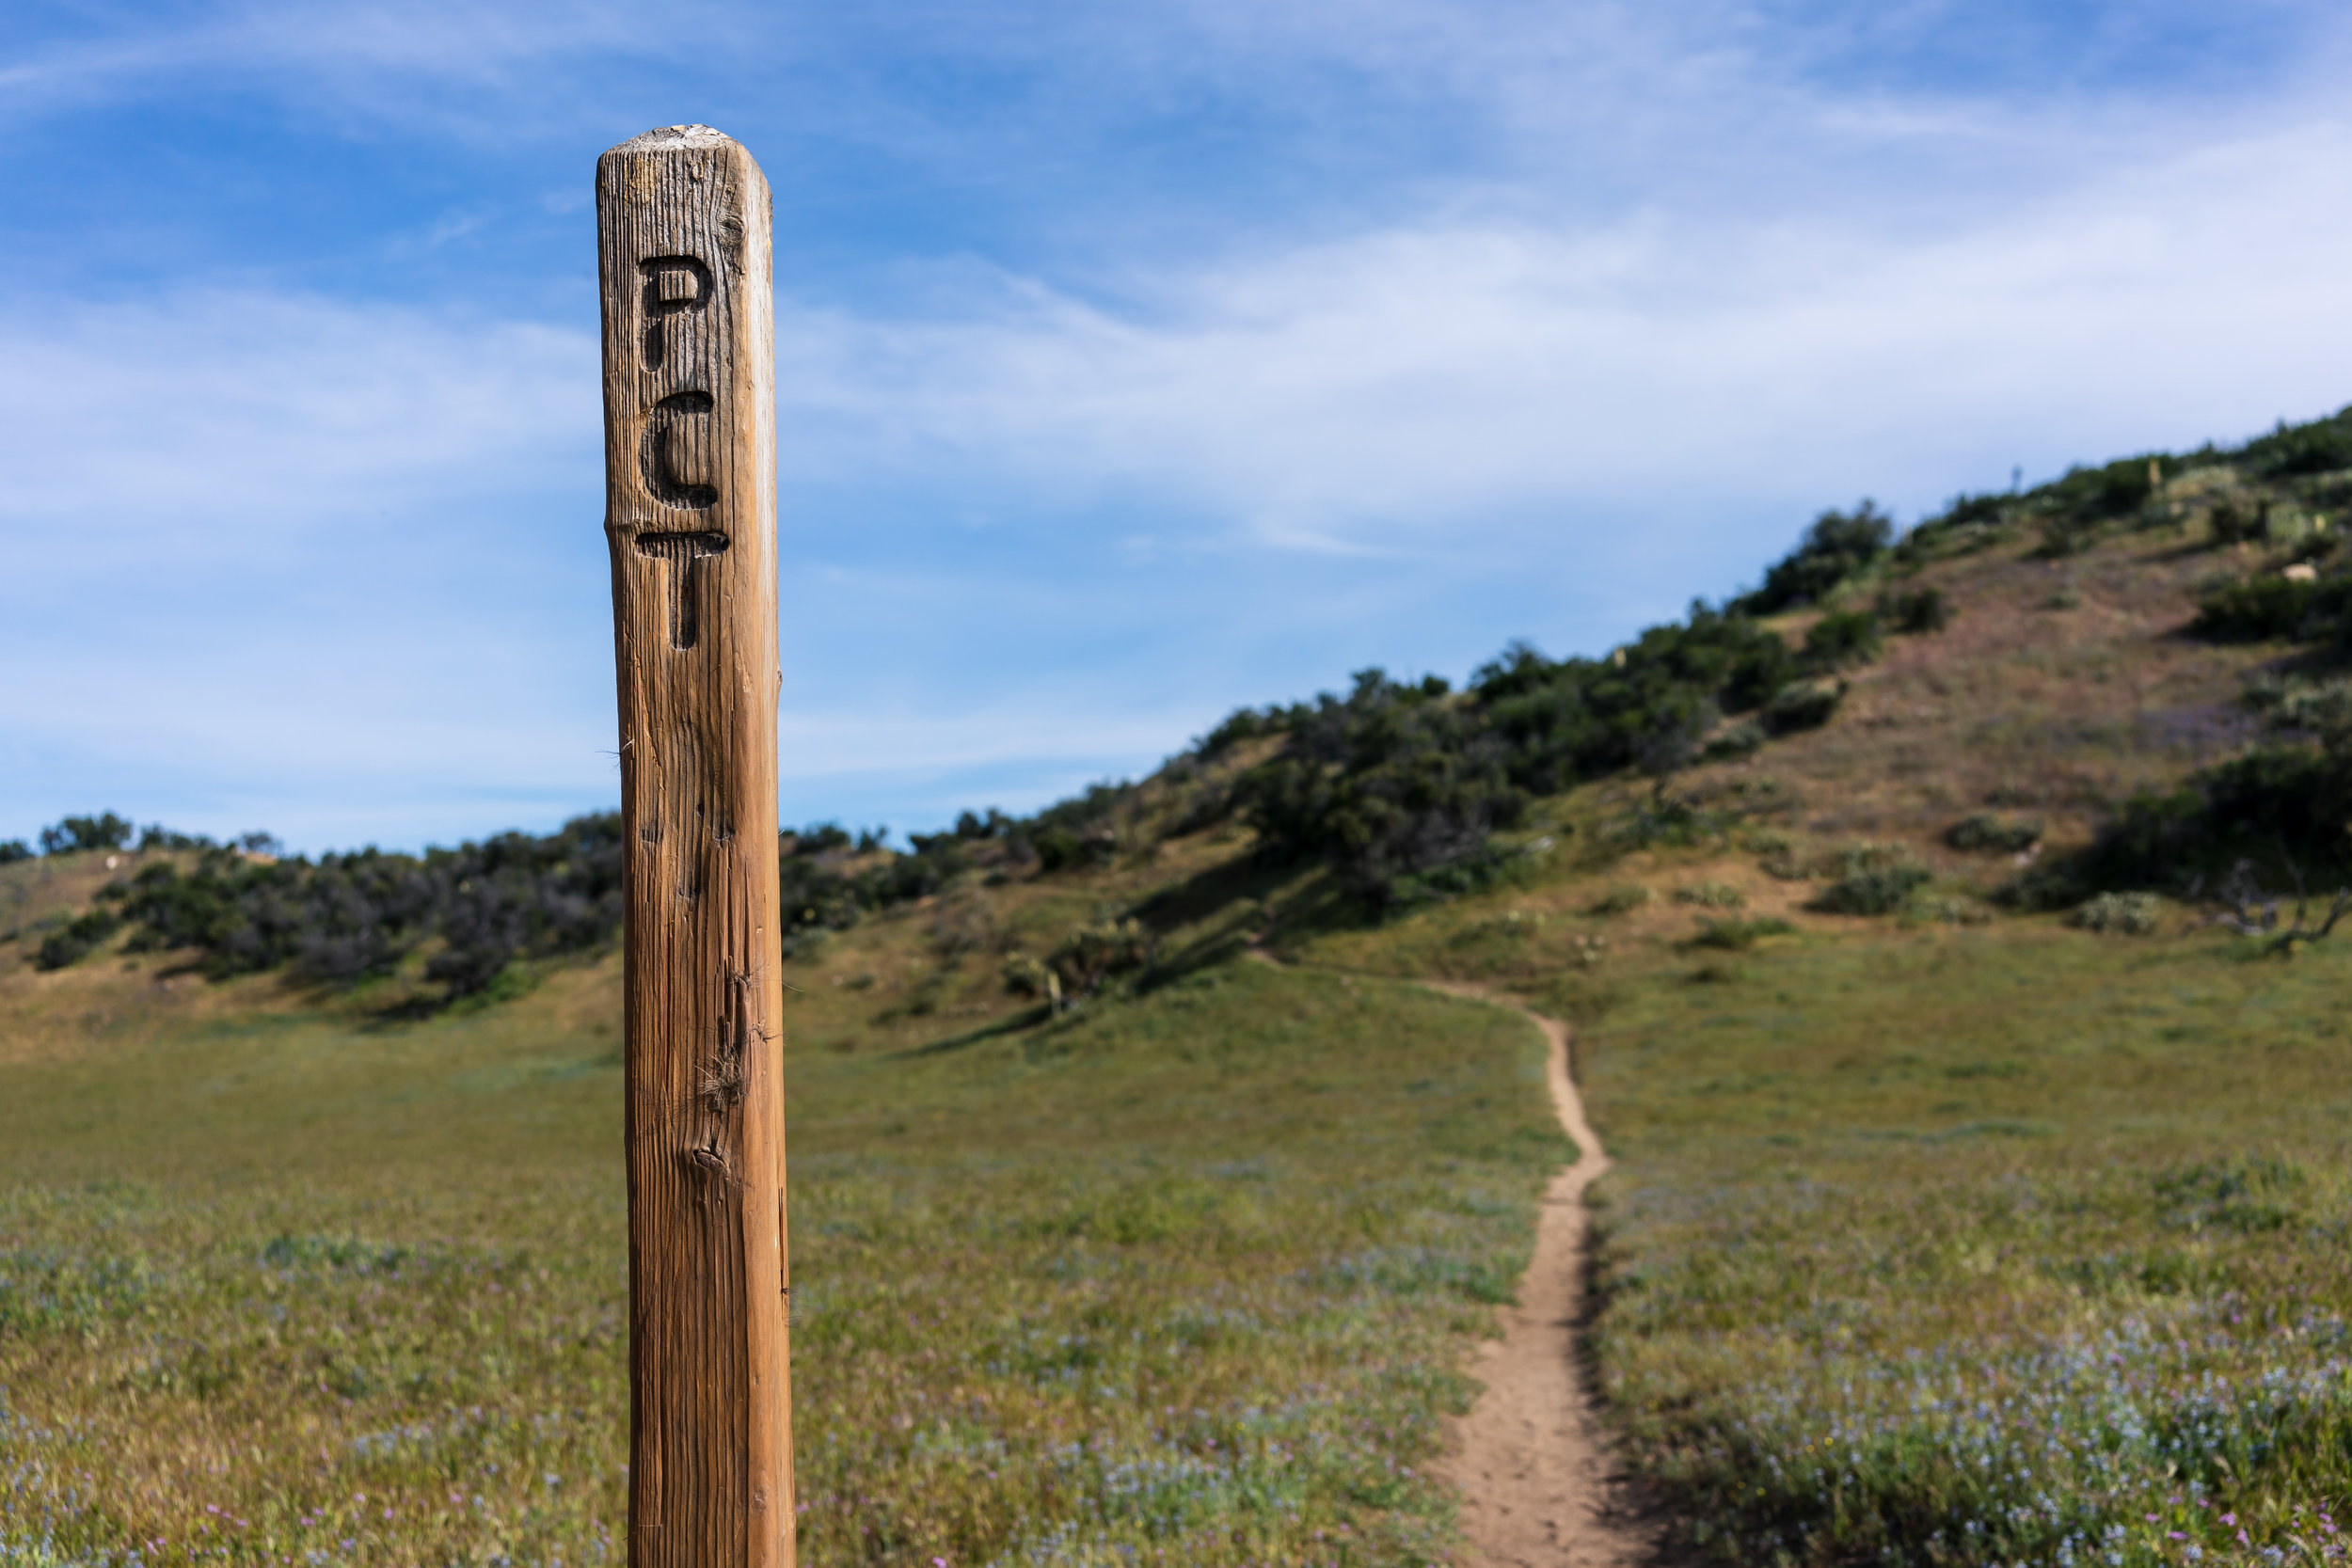 We're embarking on our biggest adventure yet. - We're currently hiking the Pacific Crest Trail.